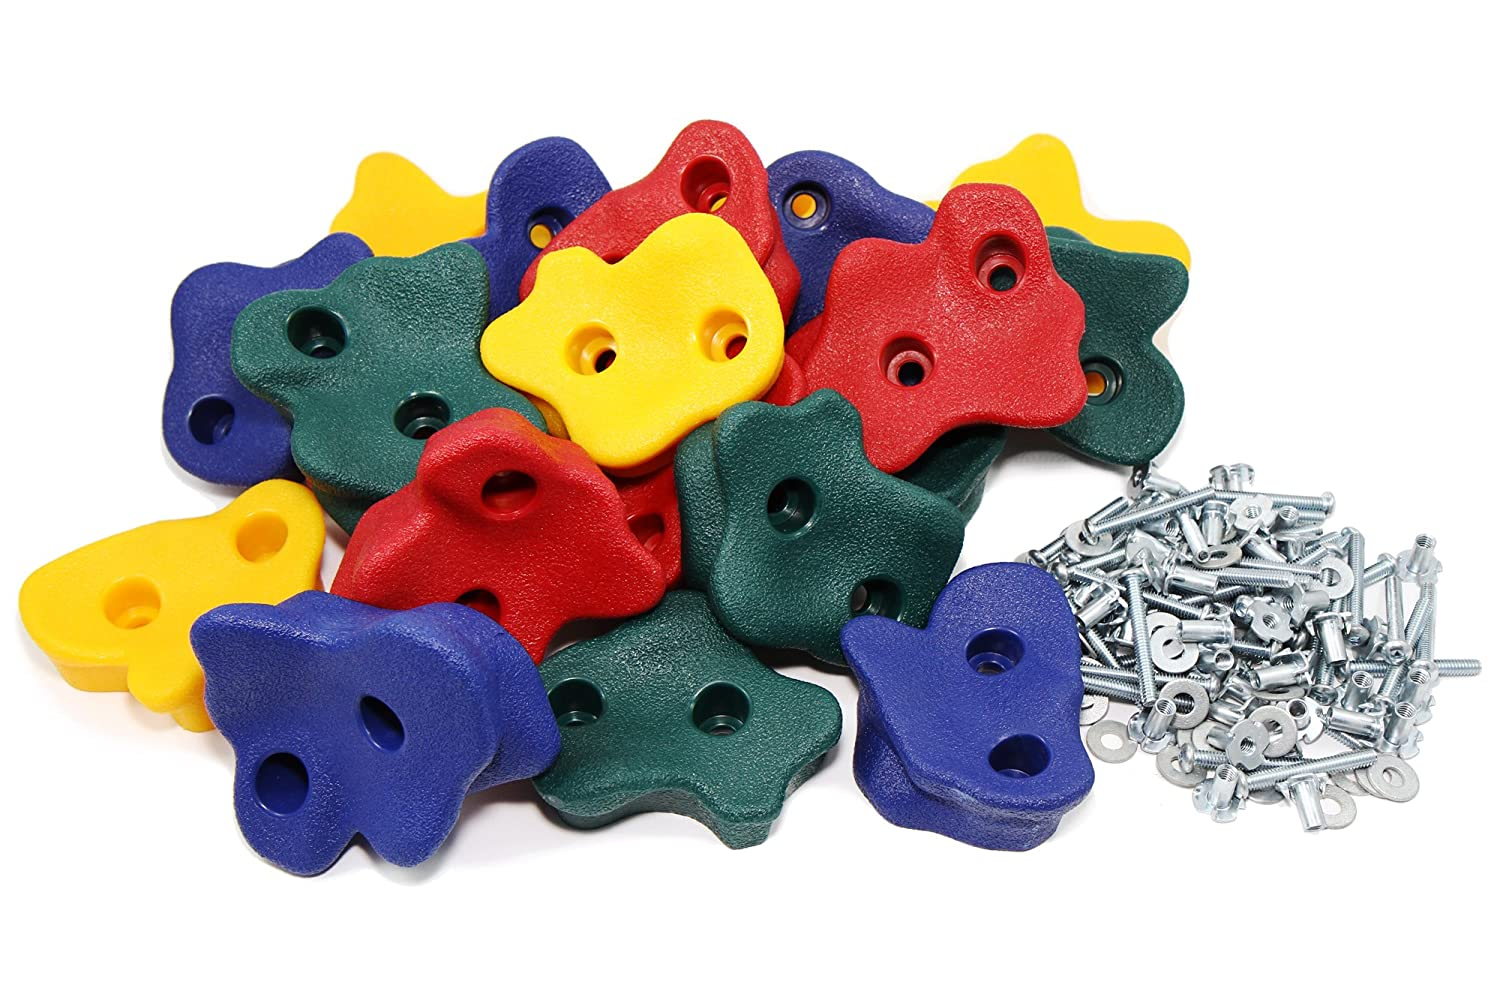 JGS 20 Premium Quality Large Rock Climbing Holds for Kids with Longer 2 Mounting Hardware for Wood Playset Swing Set Indoor Outdoor Climbing Wall Children Playground eBook Install Guide Included Jungle George Swings